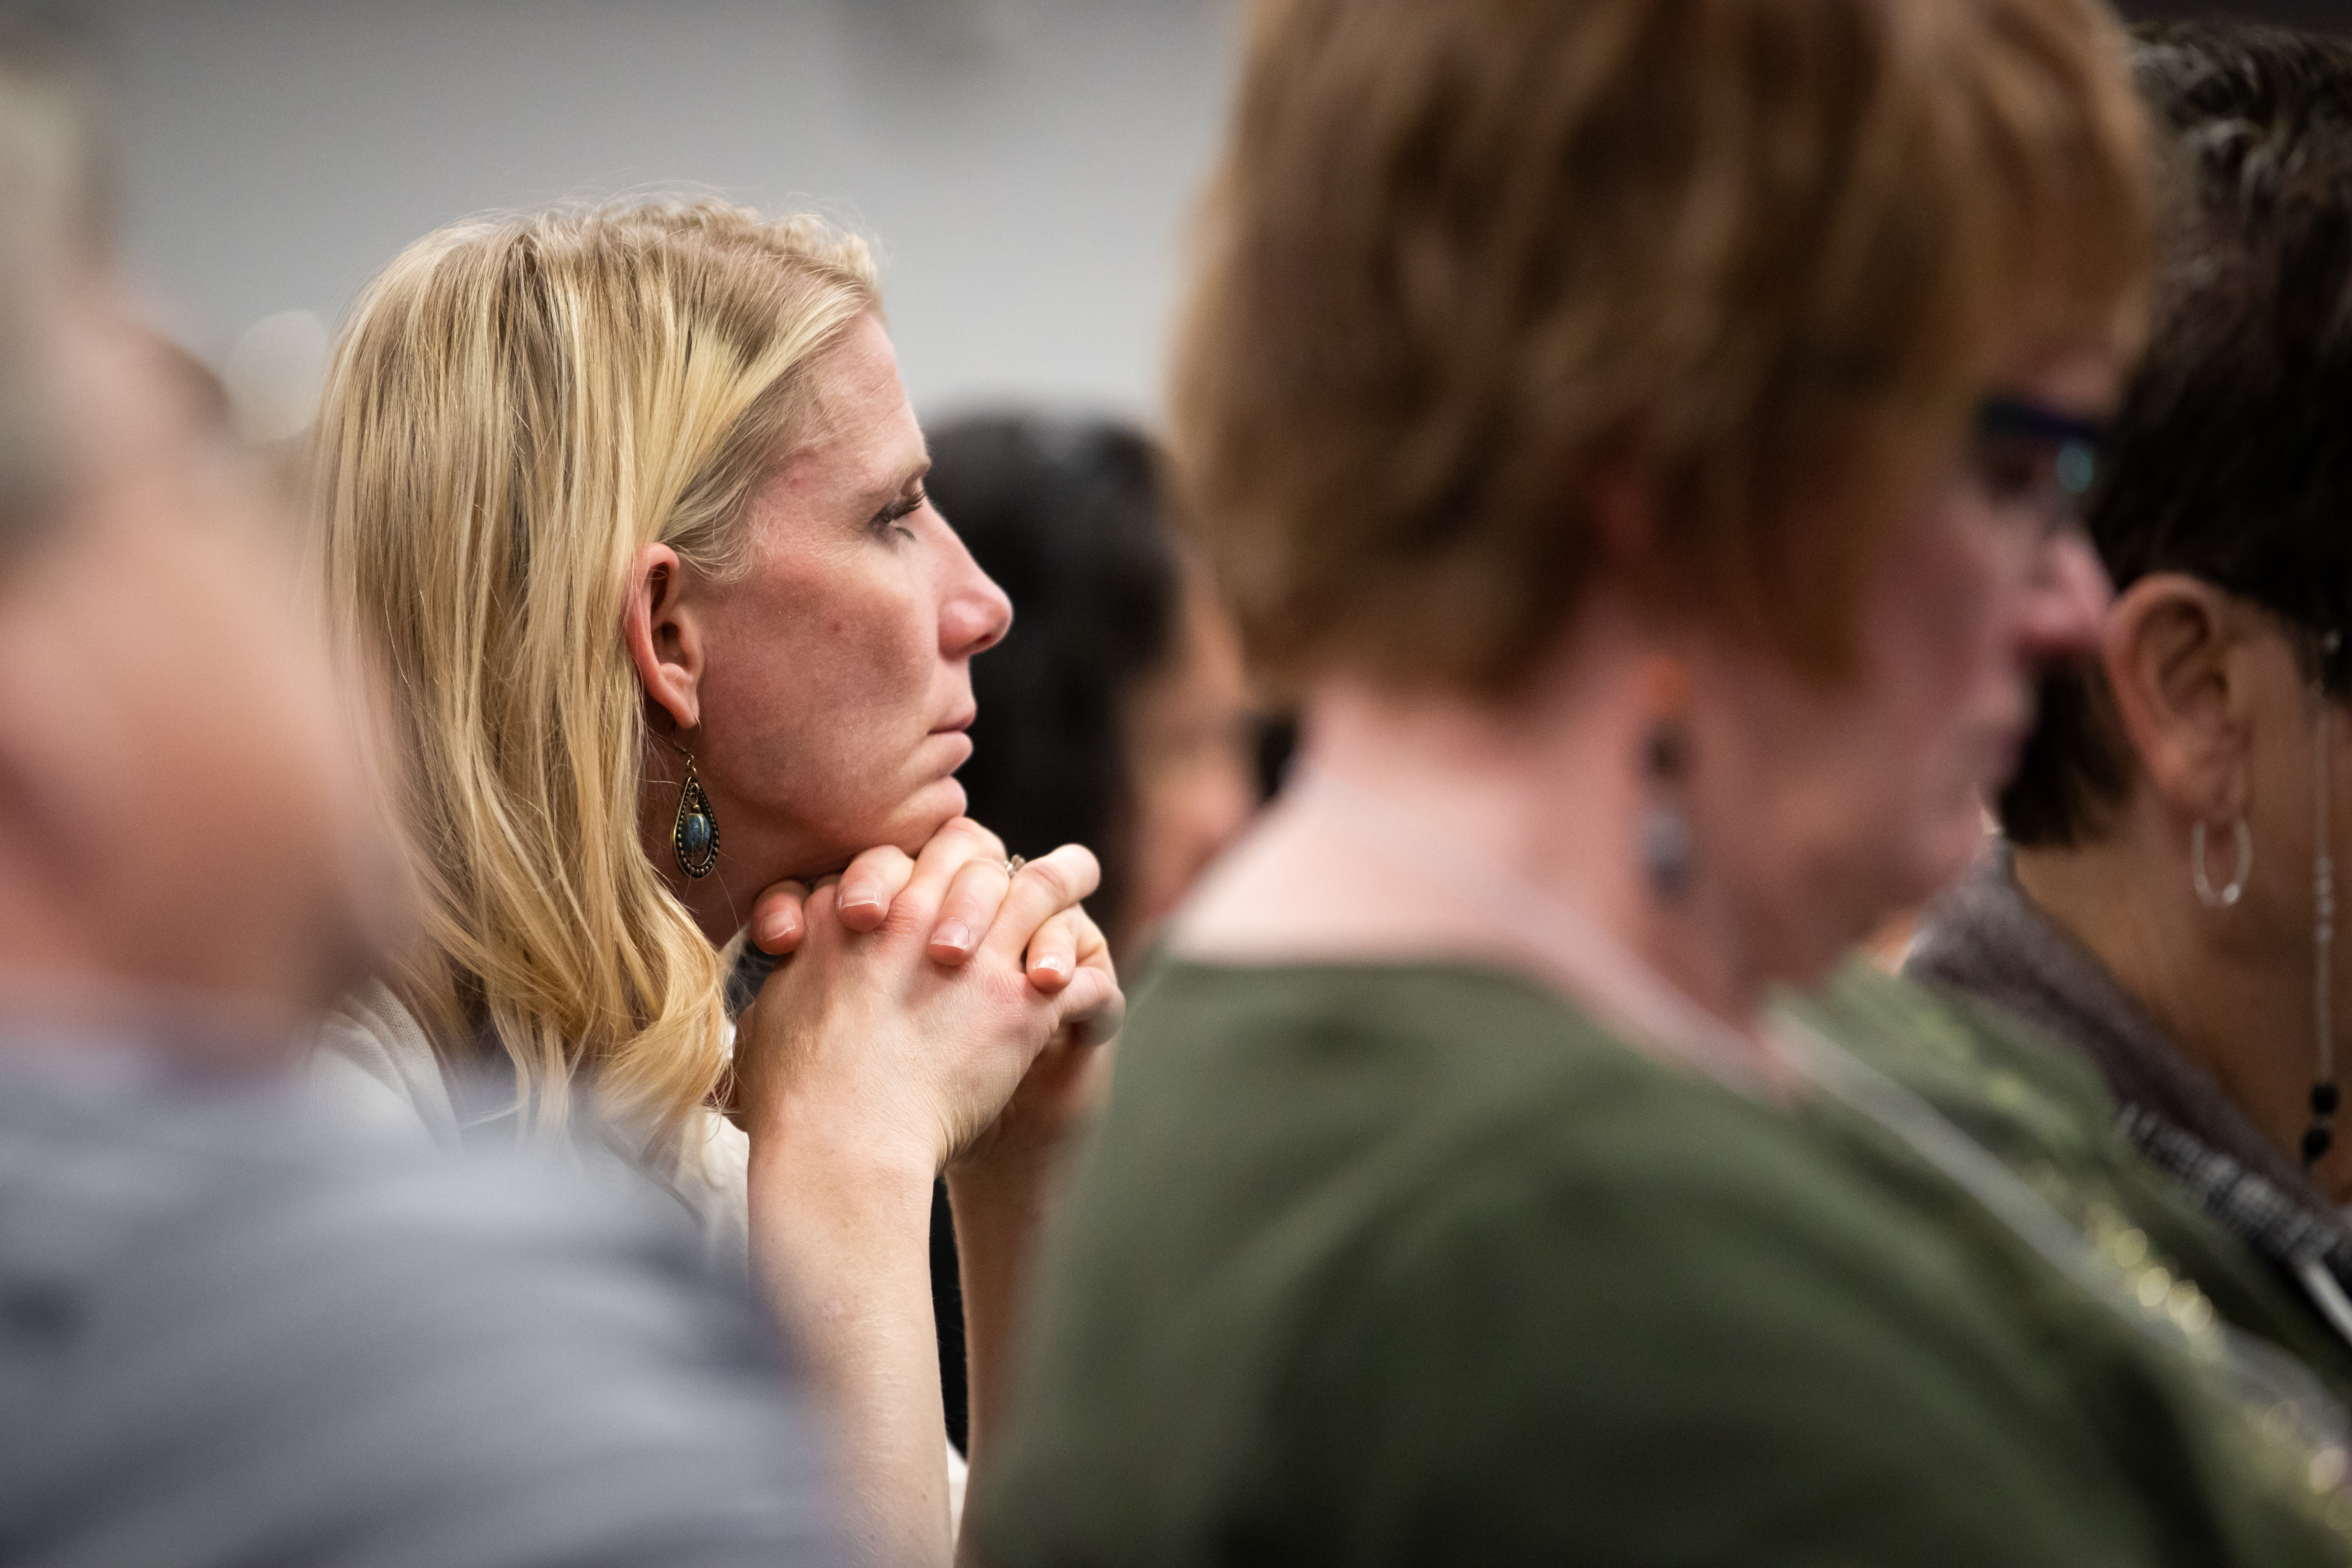 Women listen during a class session during the 2019 Women's Conference on May 2, 2019.